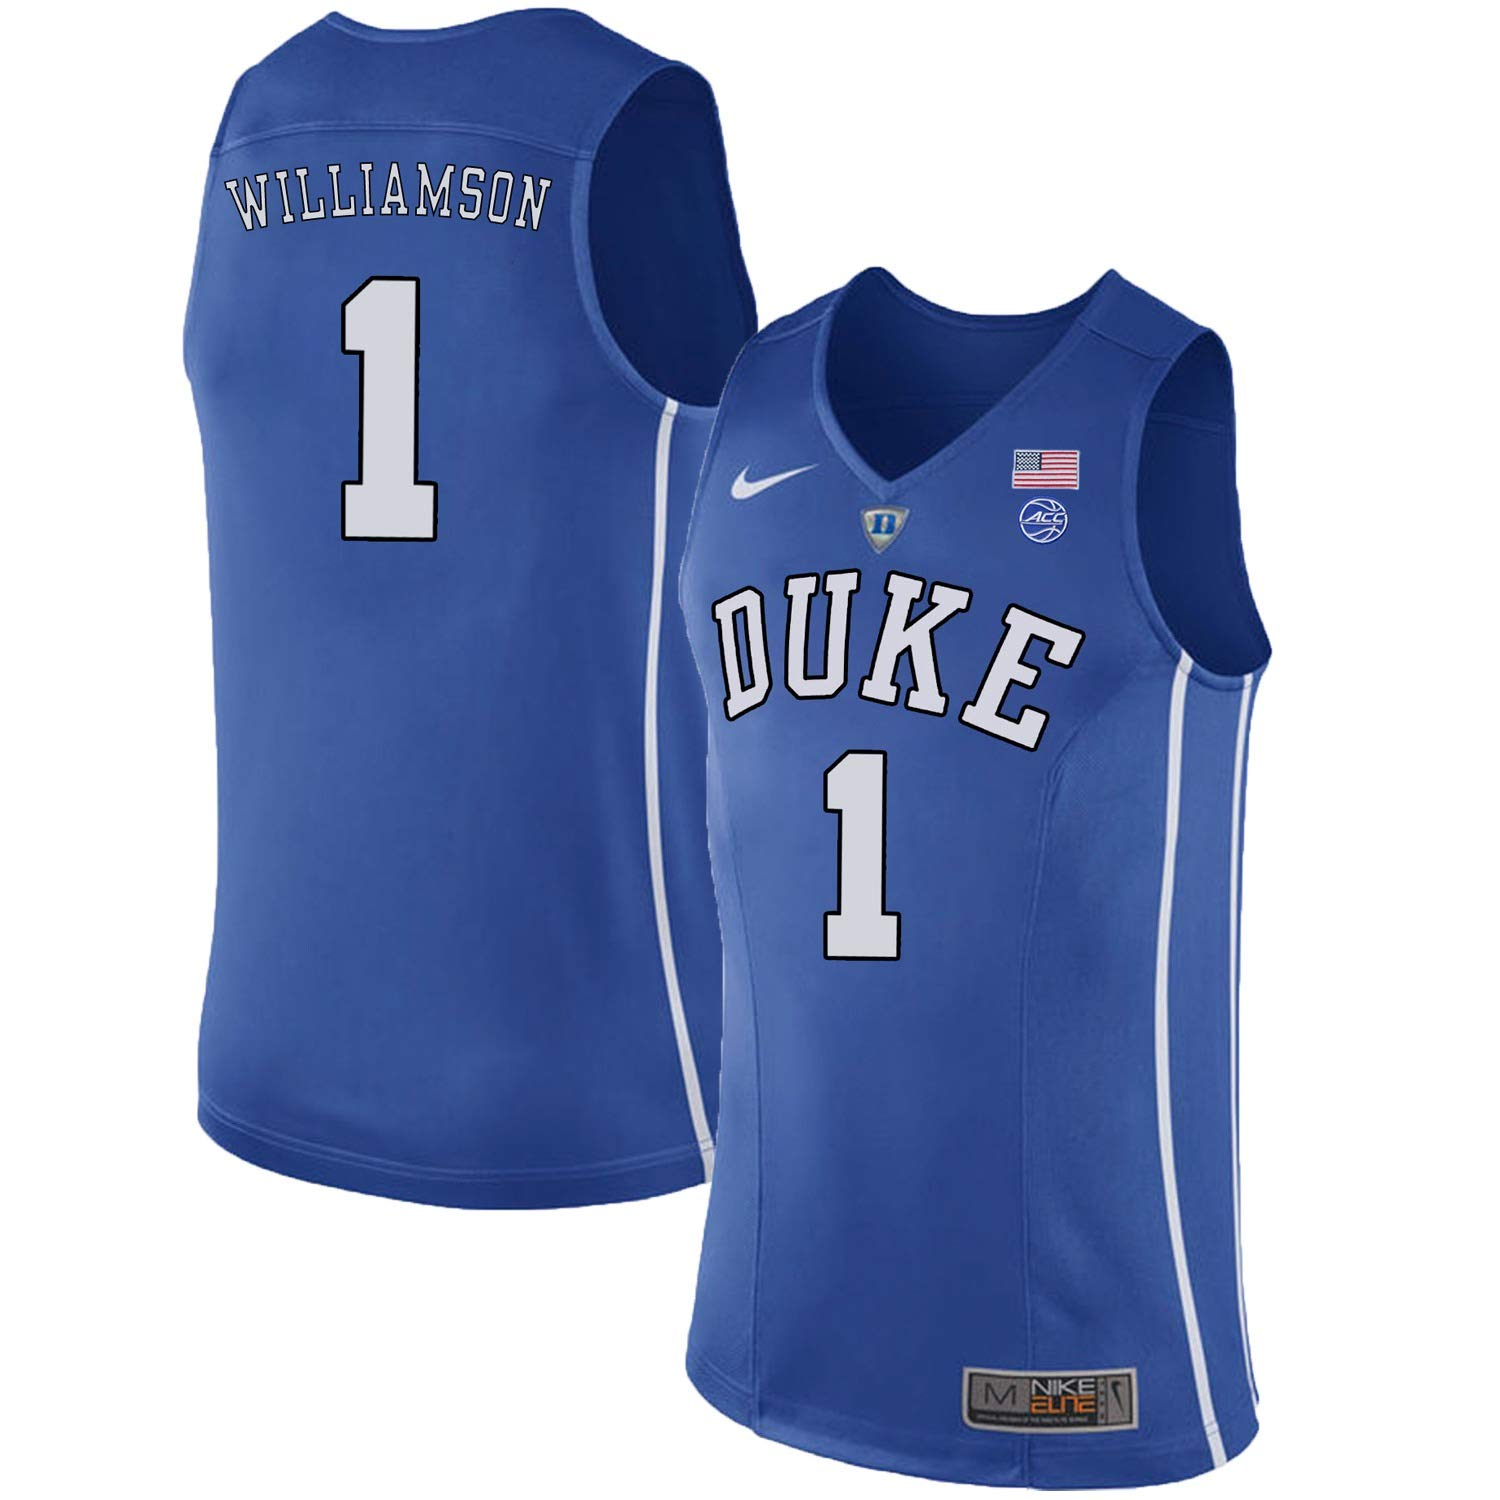 4d35325e829 Amazon.com : Majestic Athletic Zion Williamson no. 1 Stitched Duke Blue  Devils Mens College Basketball Jersey : Sports & Outdoors